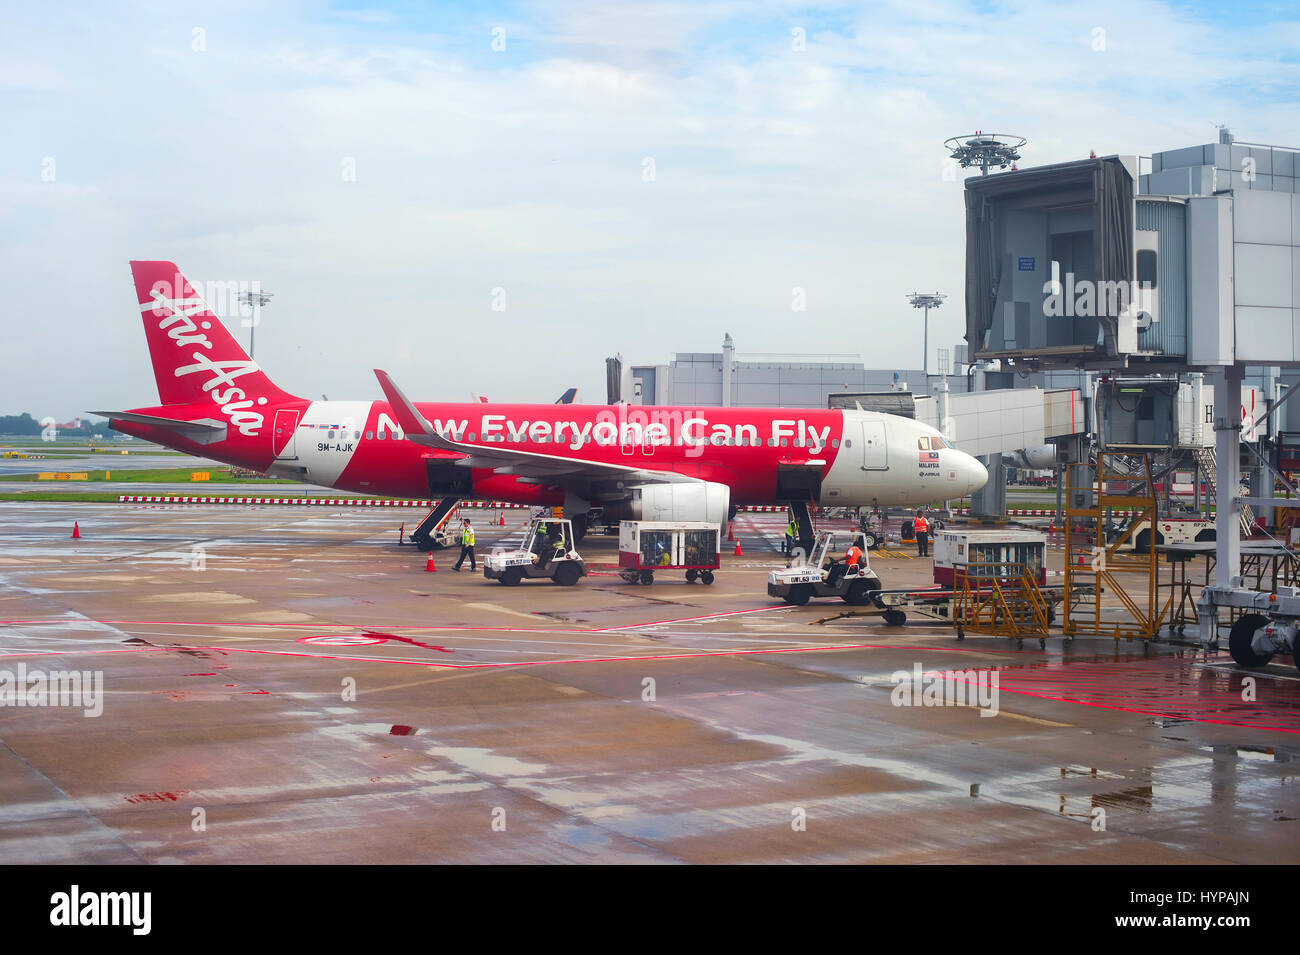 SINGAPORE - FEB 15, 2017: AirAsia aircraft in Changi International Airport during unloading baggage. Changi is the - Stock Image